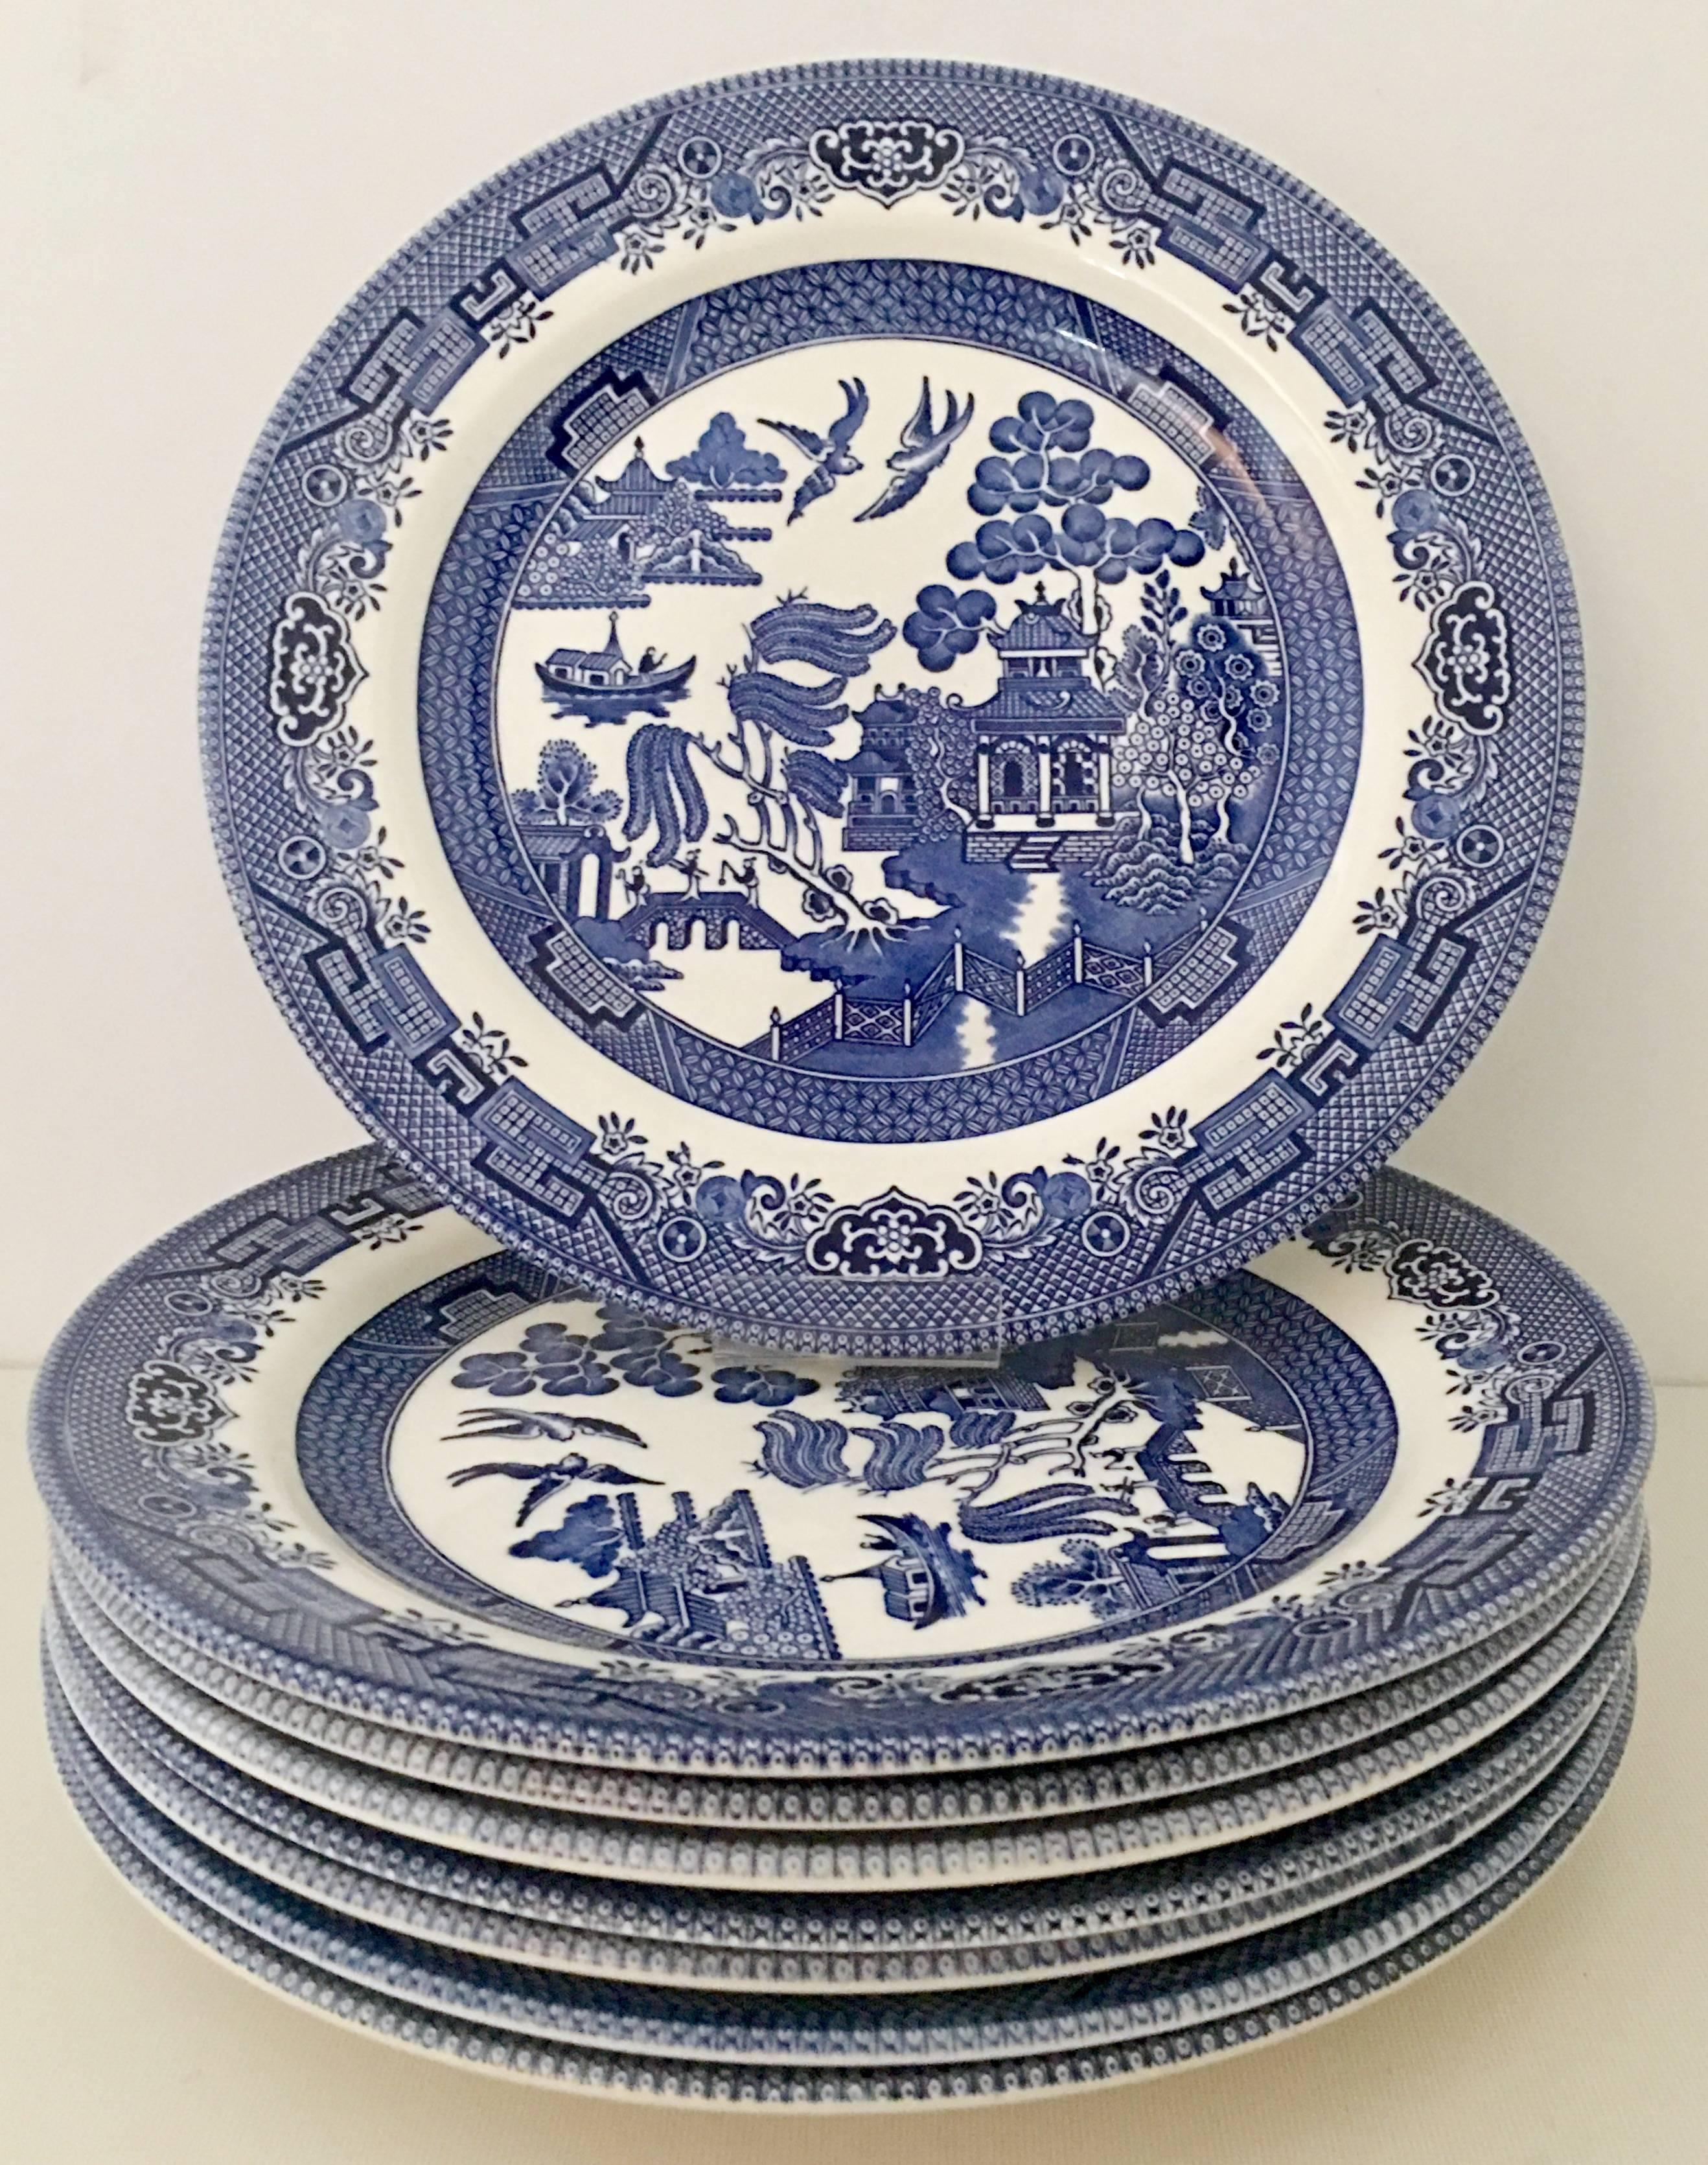 Vintage Staffordshire England Ceramic Dinnerware \ Blue Willow\  Set of 17 Pieces at 1stdibs  sc 1 st  1stDibs & Vintage Staffordshire England Ceramic Dinnerware \